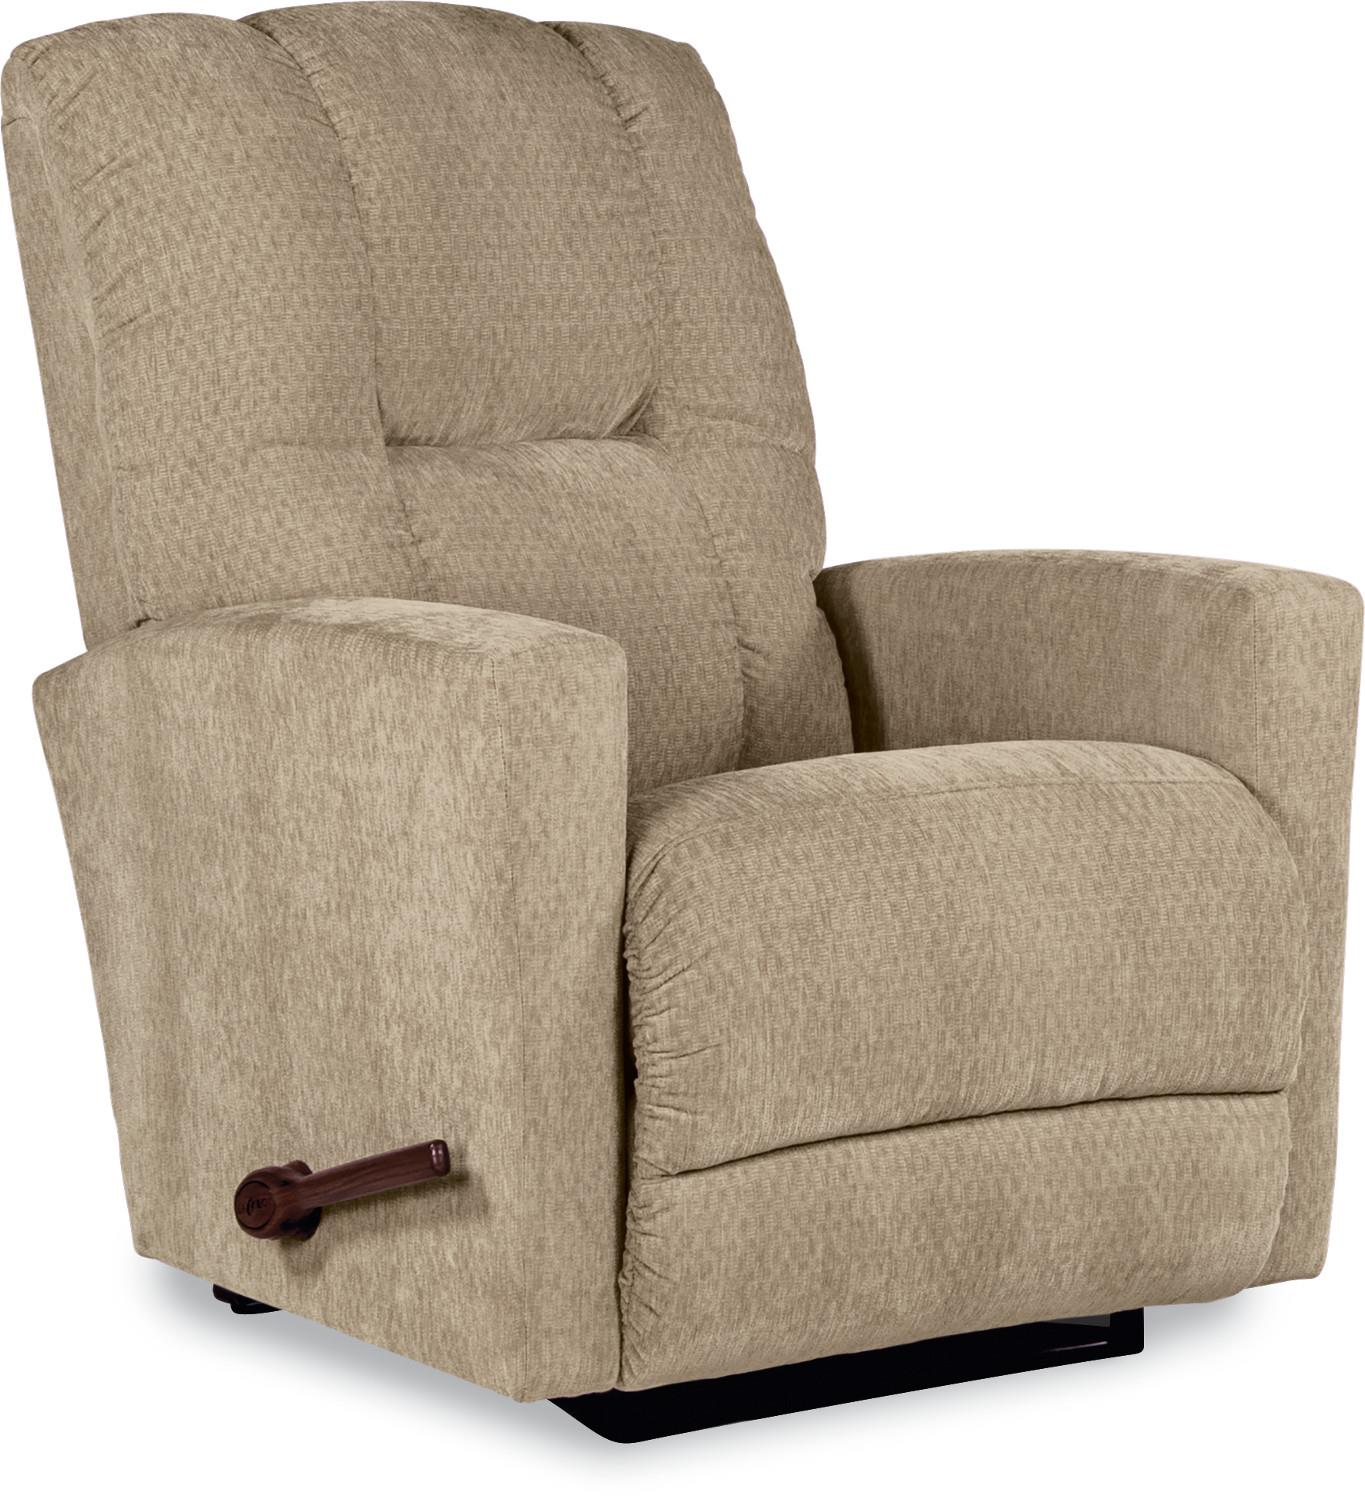 Casey RECLINA-ROCKER® Recliner  sc 1 st  Wolf Furniture & Casey RECLINA-ROCKER® Recliner by La-Z-Boy | Wolf and Gardiner ... islam-shia.org